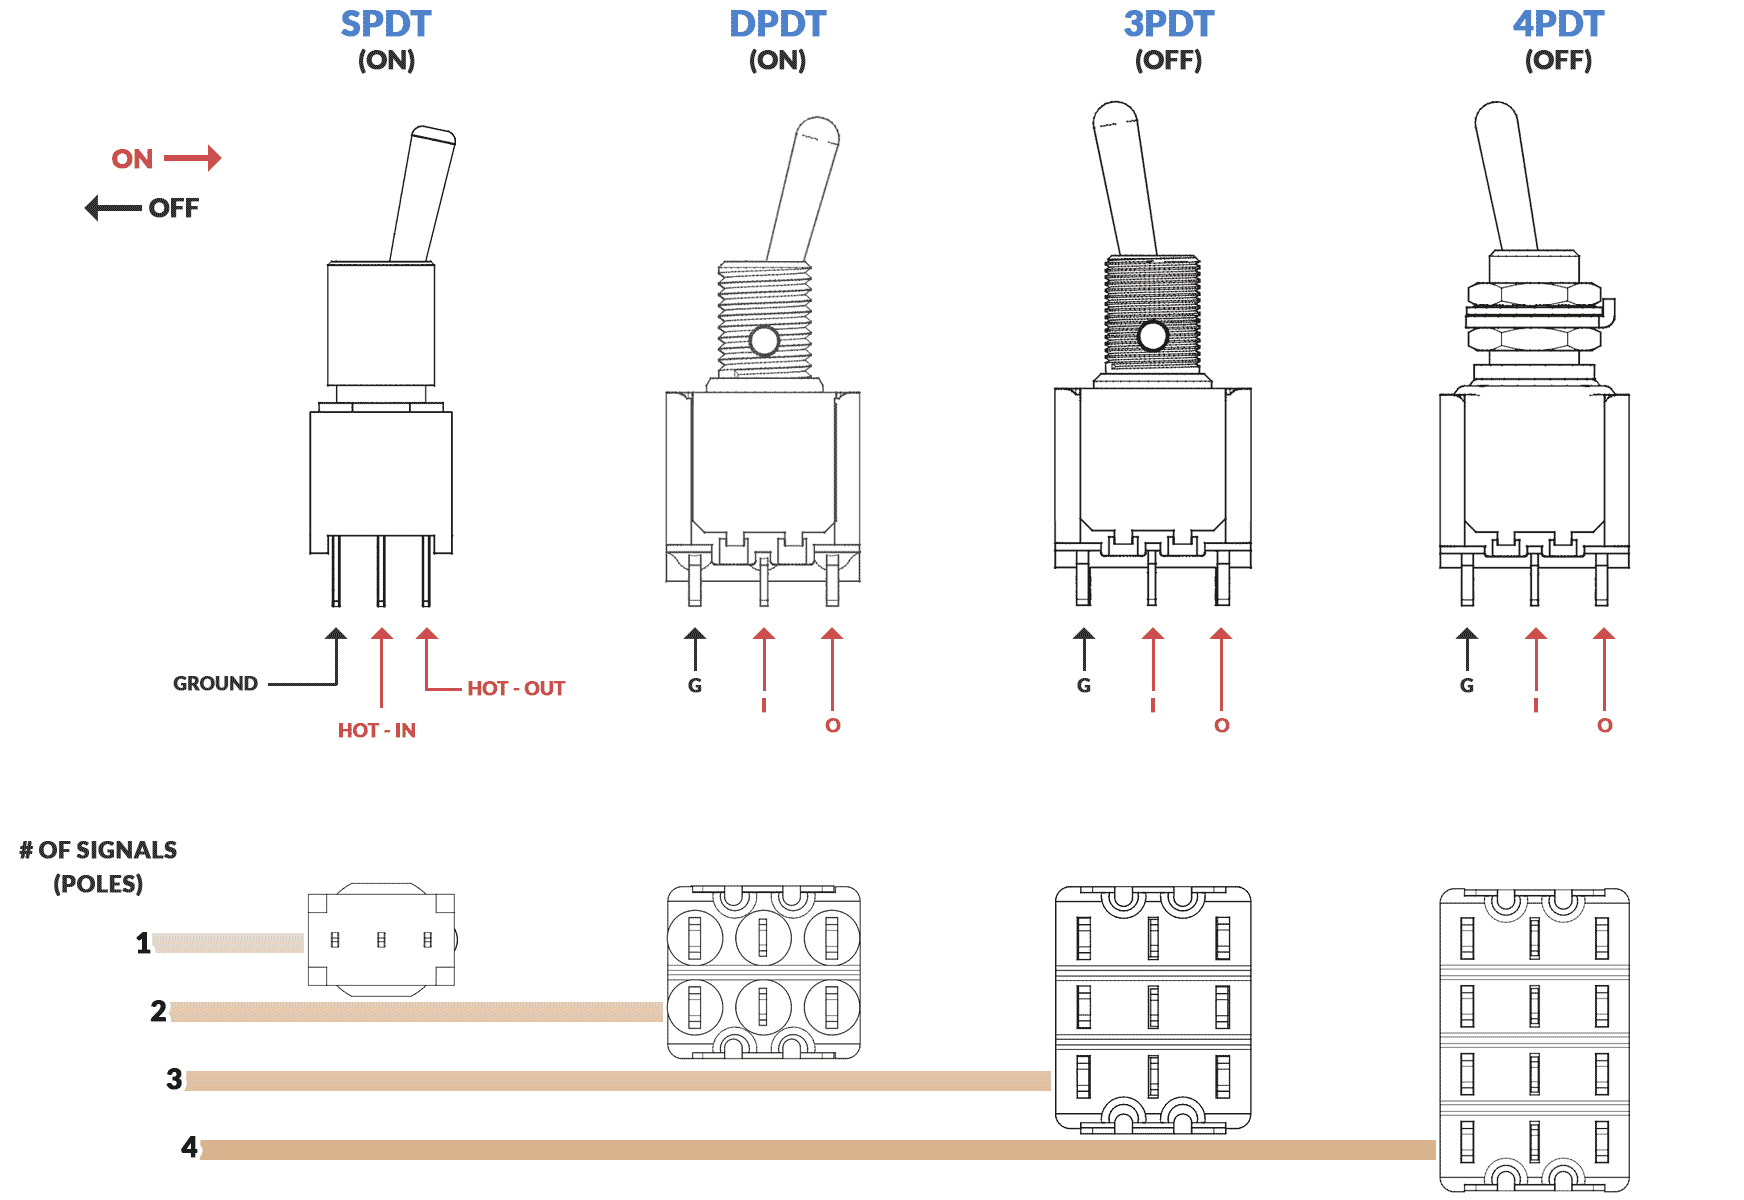 hight resolution of a breakdown of how spdt dpdt 3pdt and 4pdt switches function and